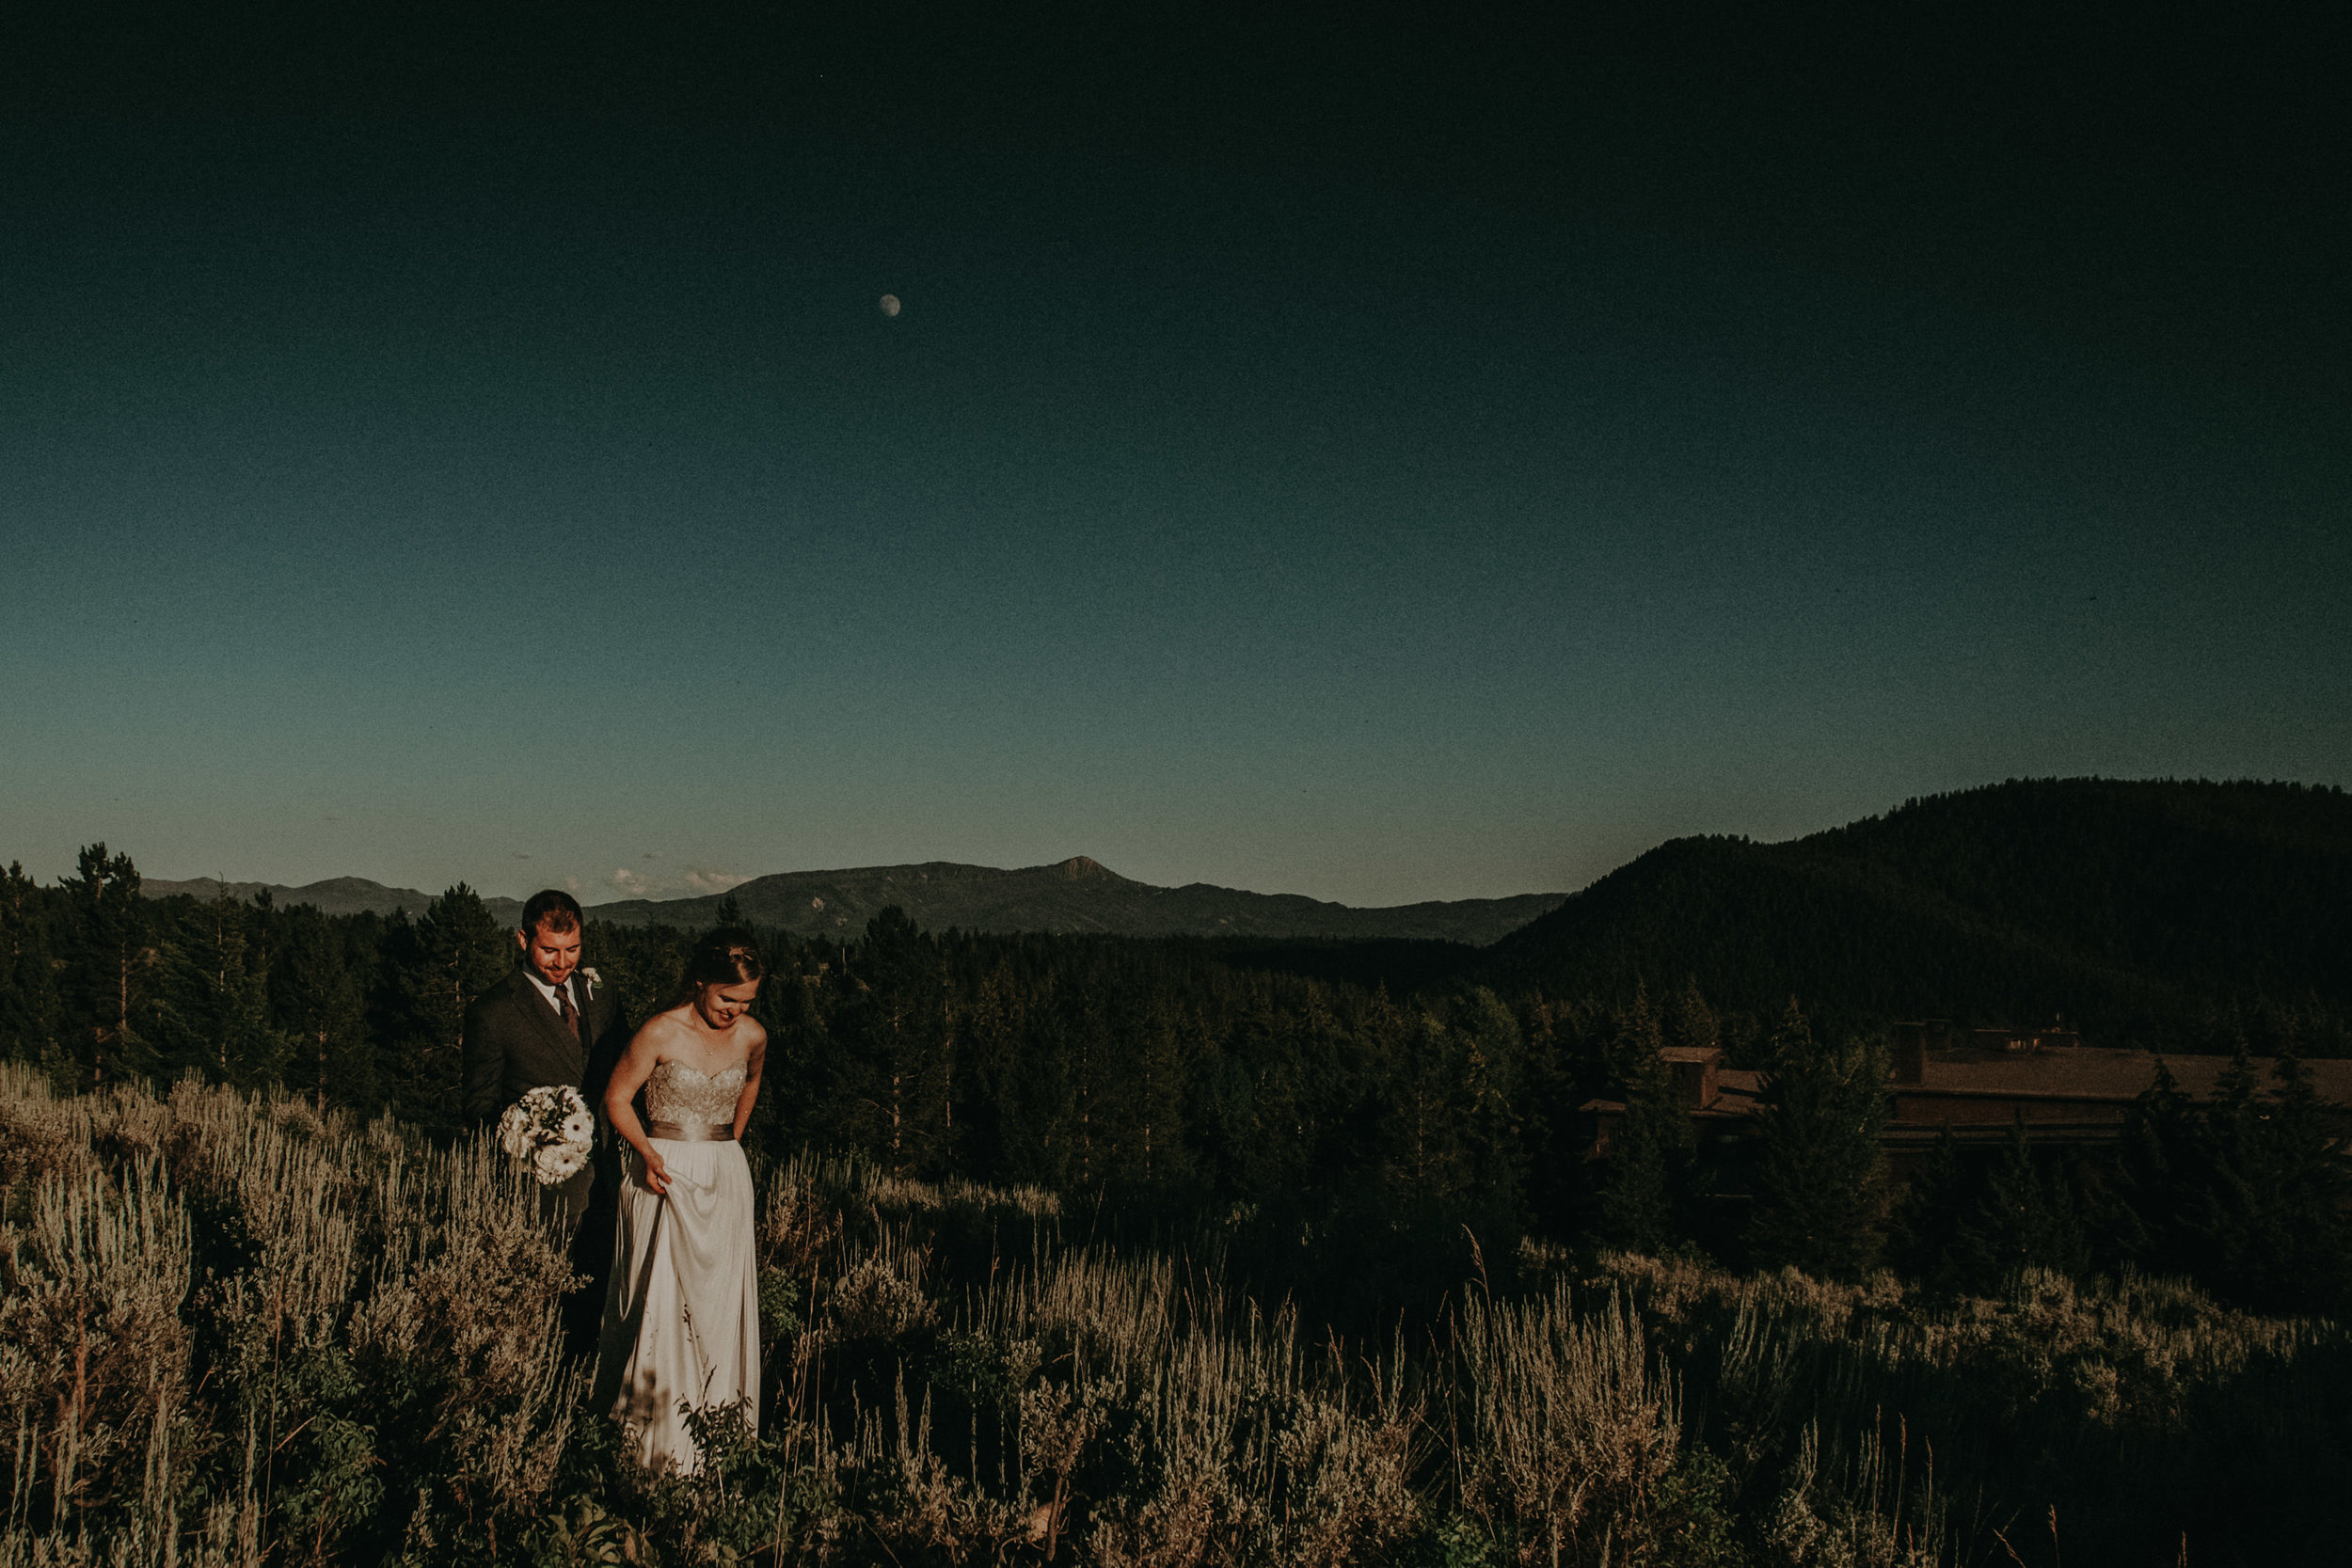 The moon shining over the Grand Tetons and these newlyweds.